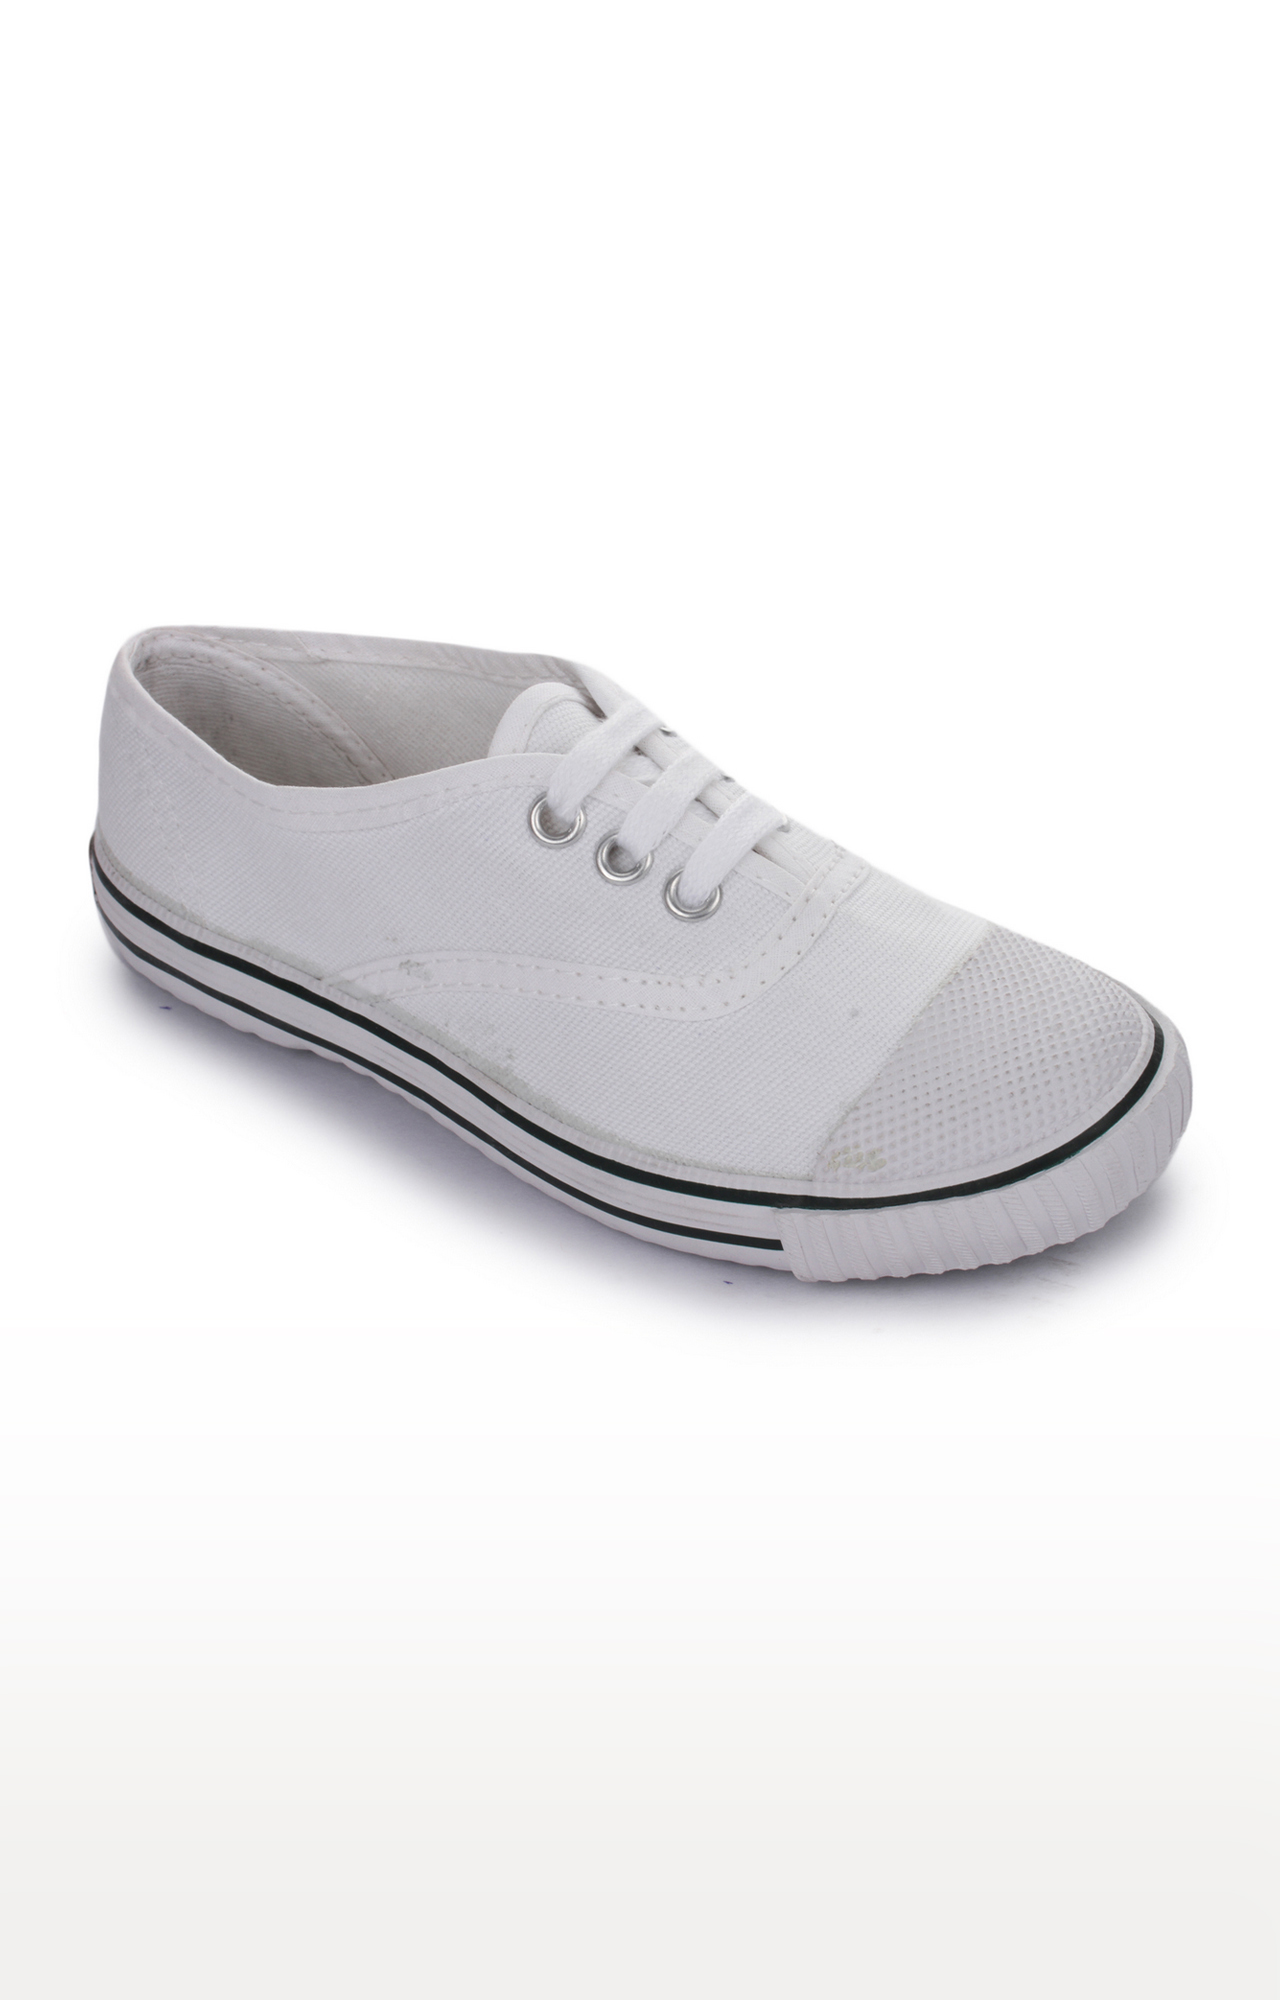 Liberty | Prefect by Liberty Unisex White Sneakers